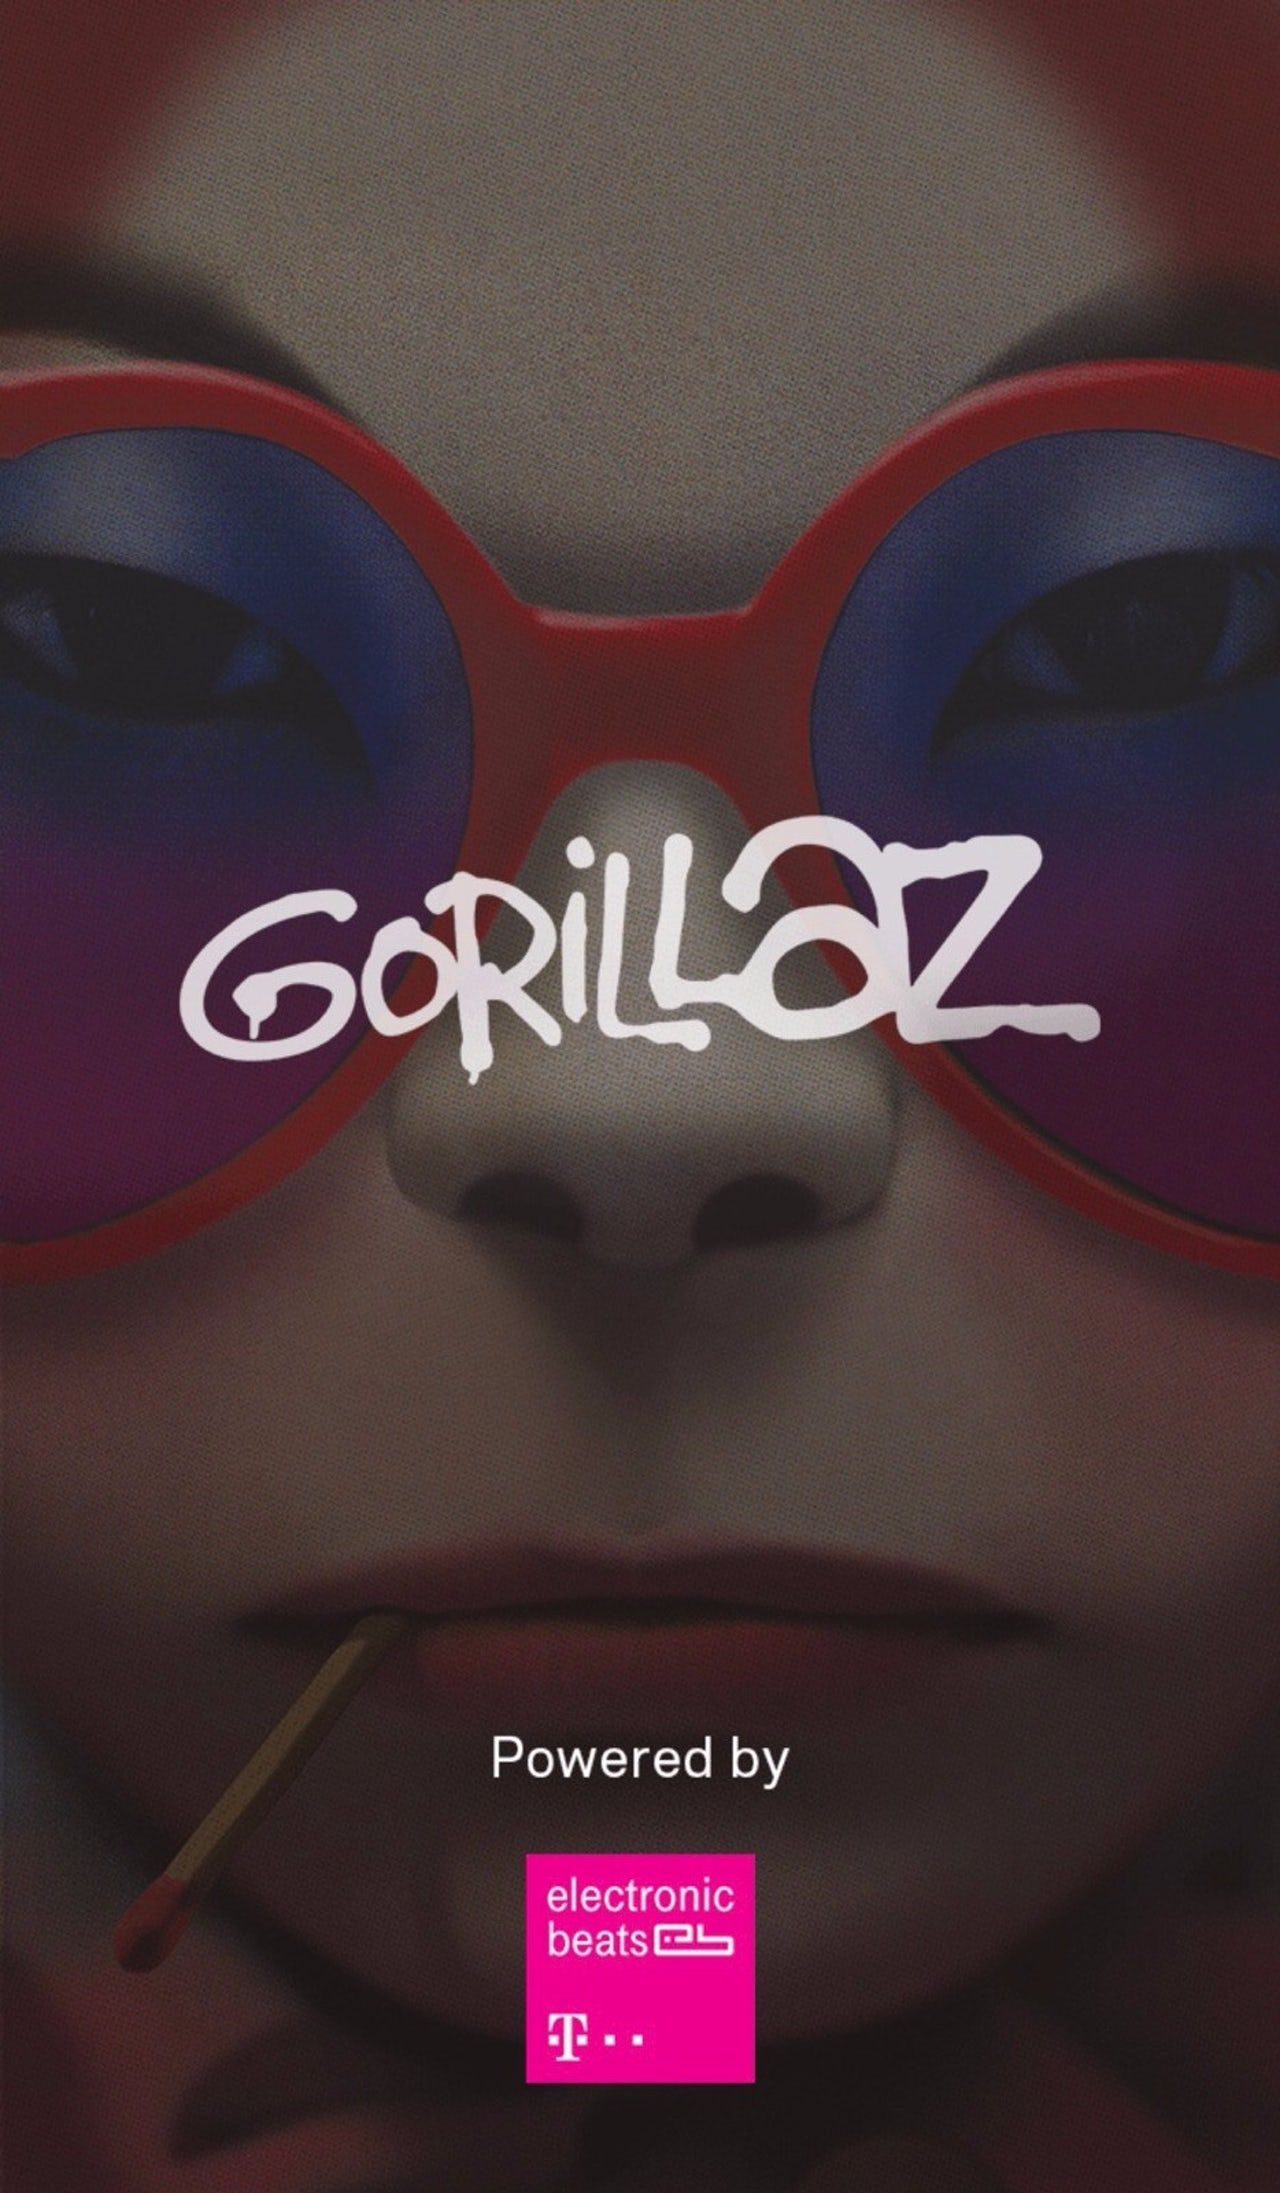 The loading screen of The Gorillaz's augmented reality mobile app.